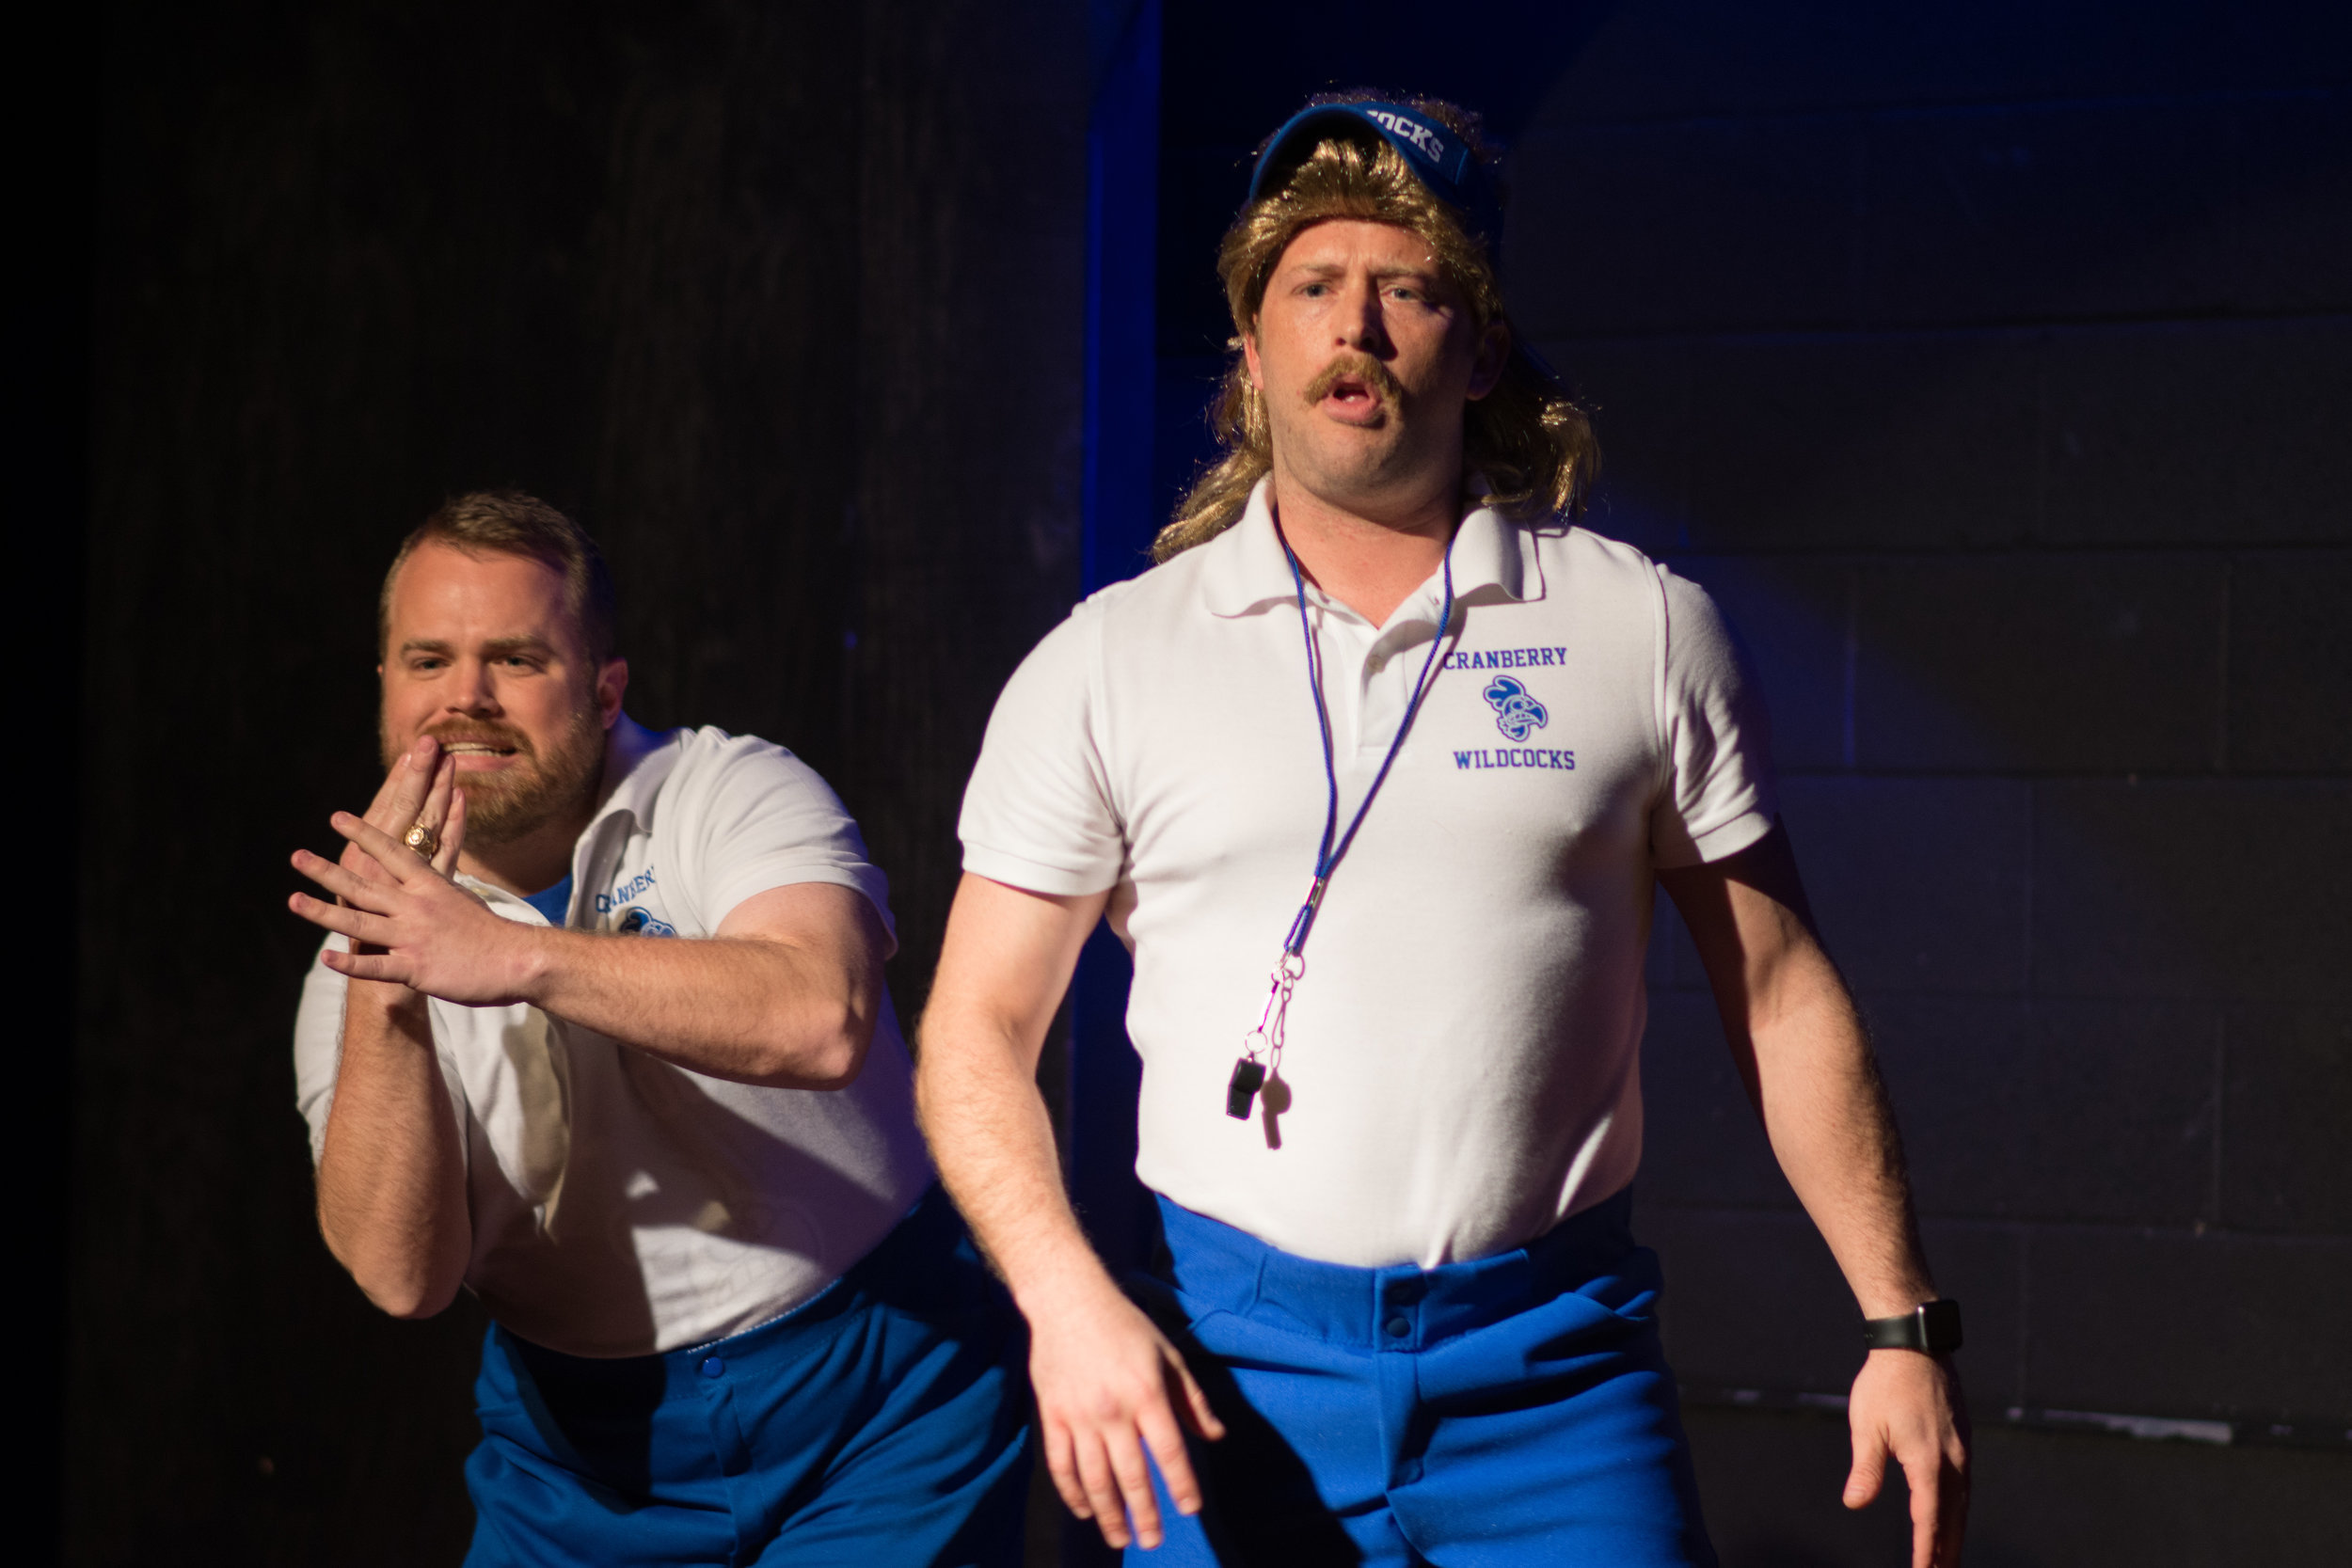 Coach Dale and Coach Gary (Played by Chad Richards) at a recent Pep Rally